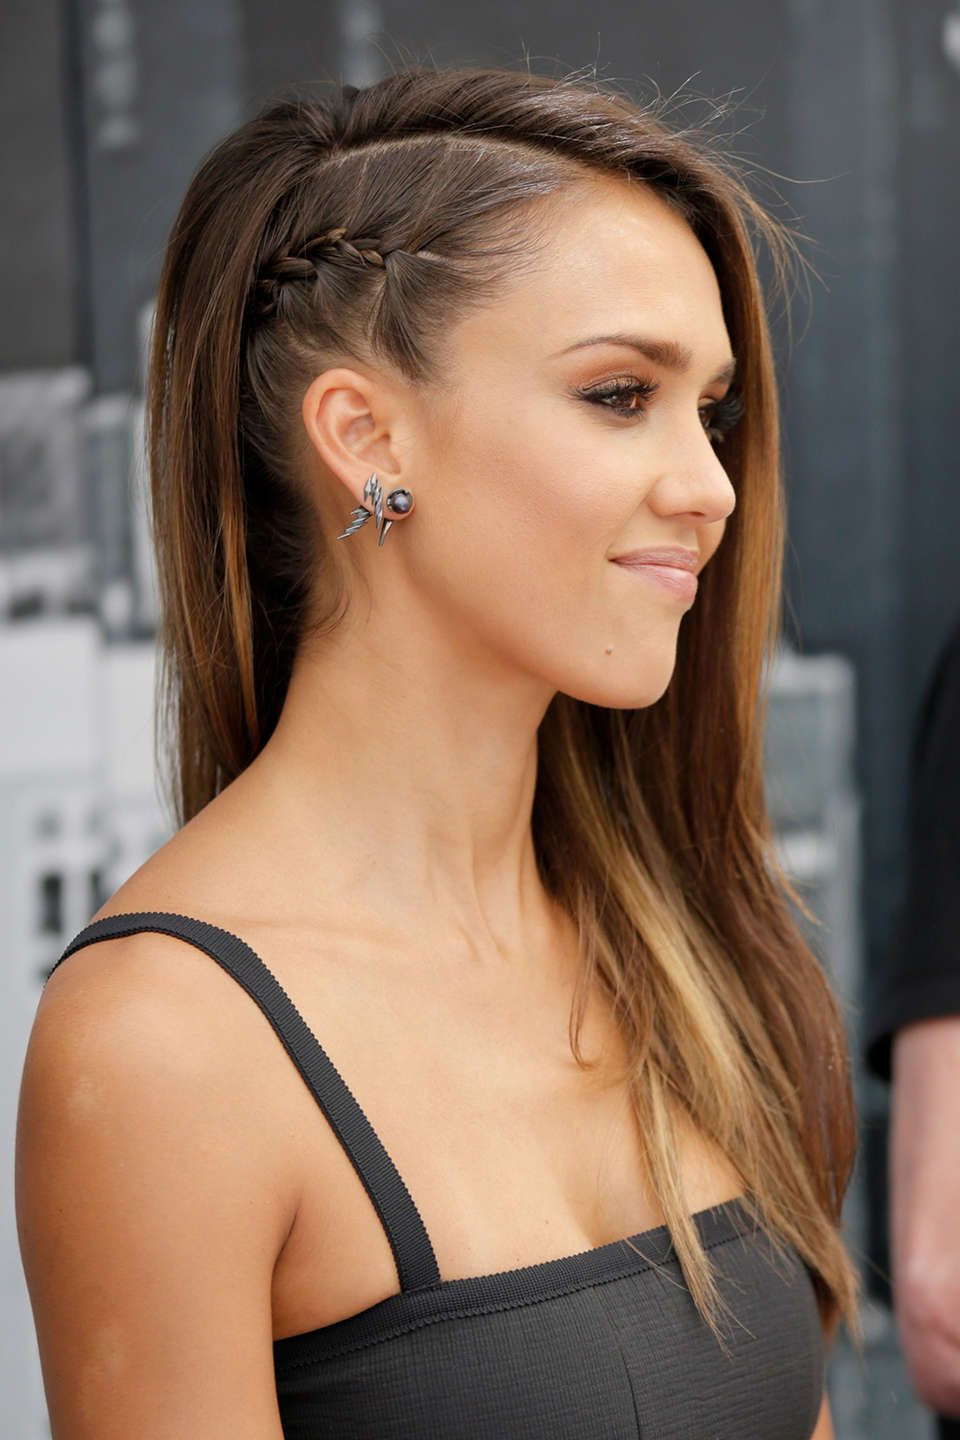 Most Recent Faux Undercut Braided Hairstyles For 31+ Classy & Stunning Braided Hairstyles For Women – Sensod (View 17 of 20)